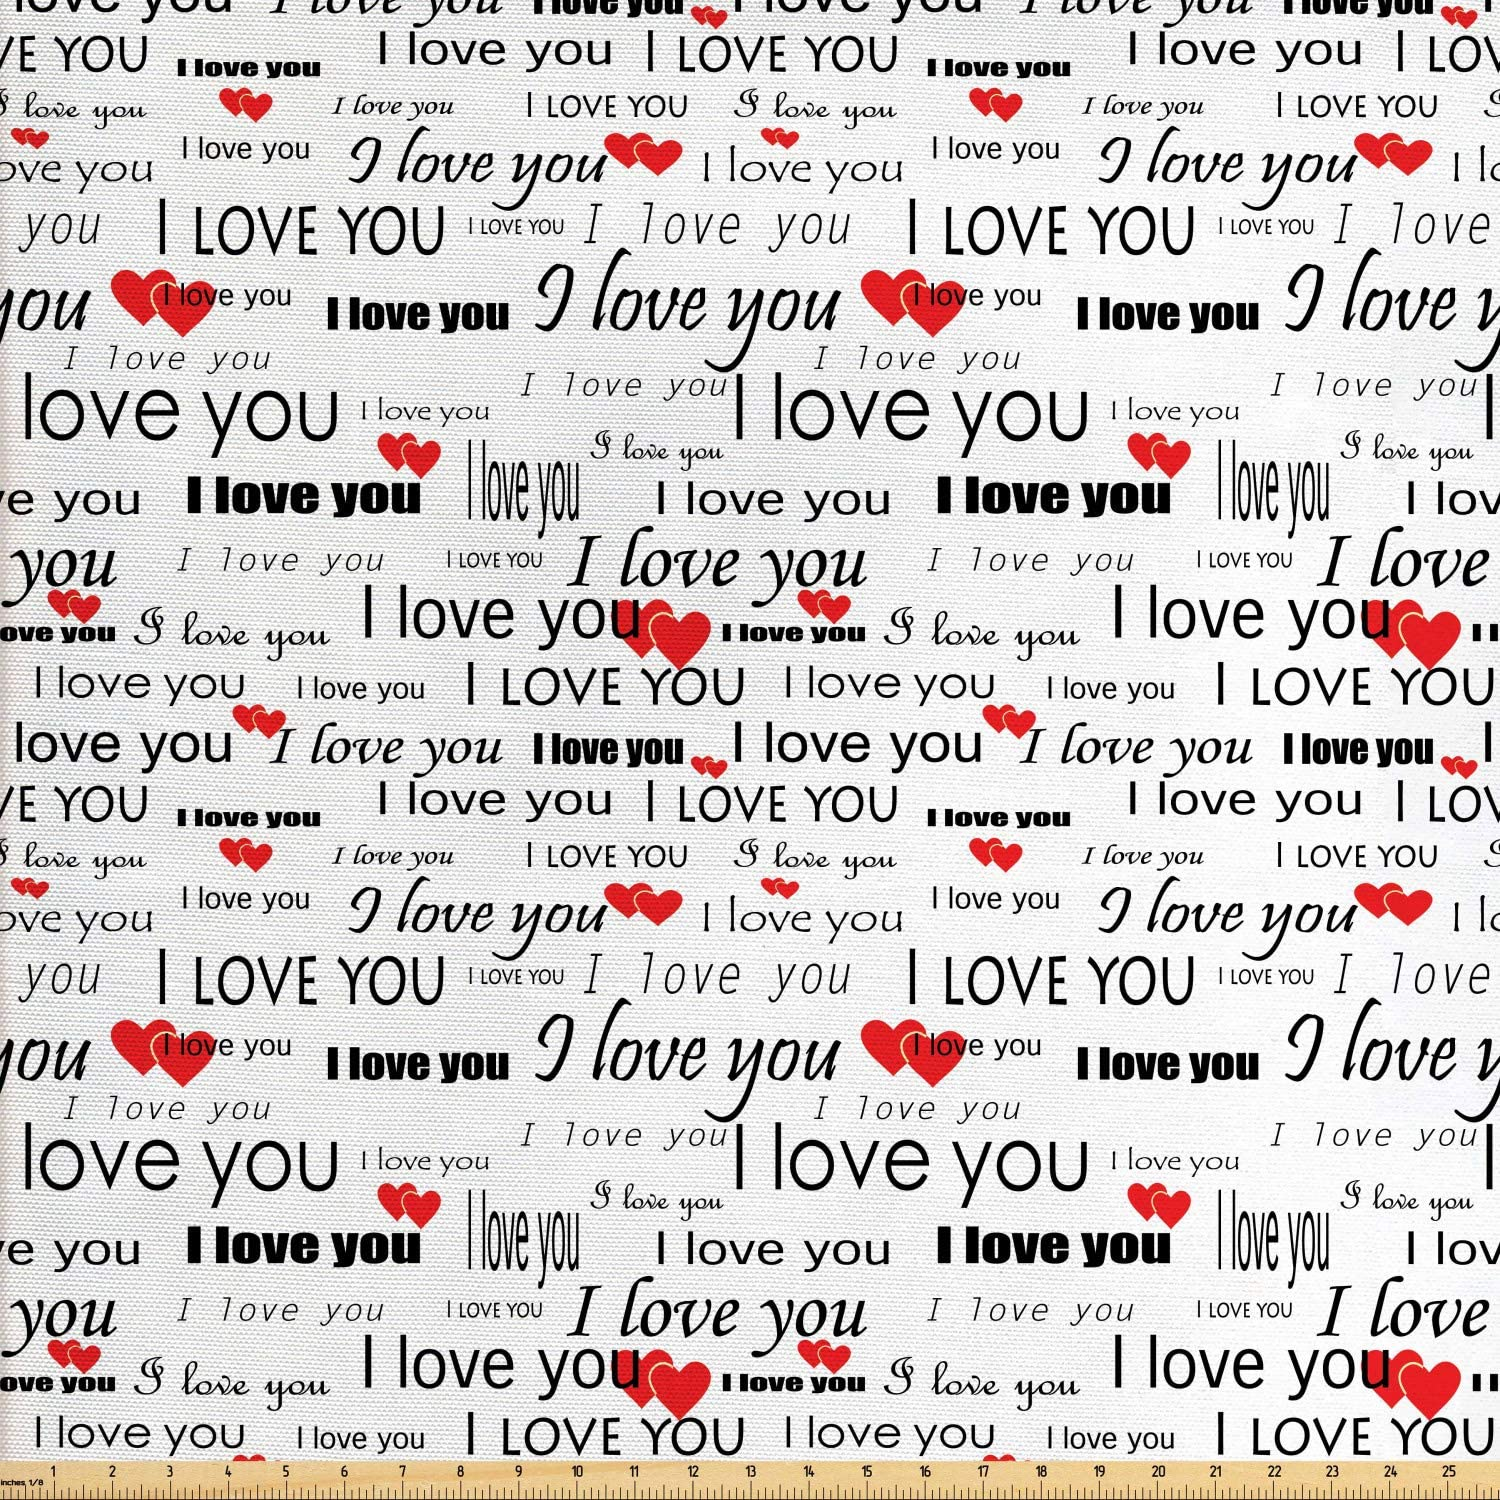 Ambesonne Romantic Fabric by The Yard, I Love You Words with Hearts Romance Couple Valentine Plain Backdrop, Decorative Fabric for Upholstery and Home Accents, 3 Yards, Vermilion White